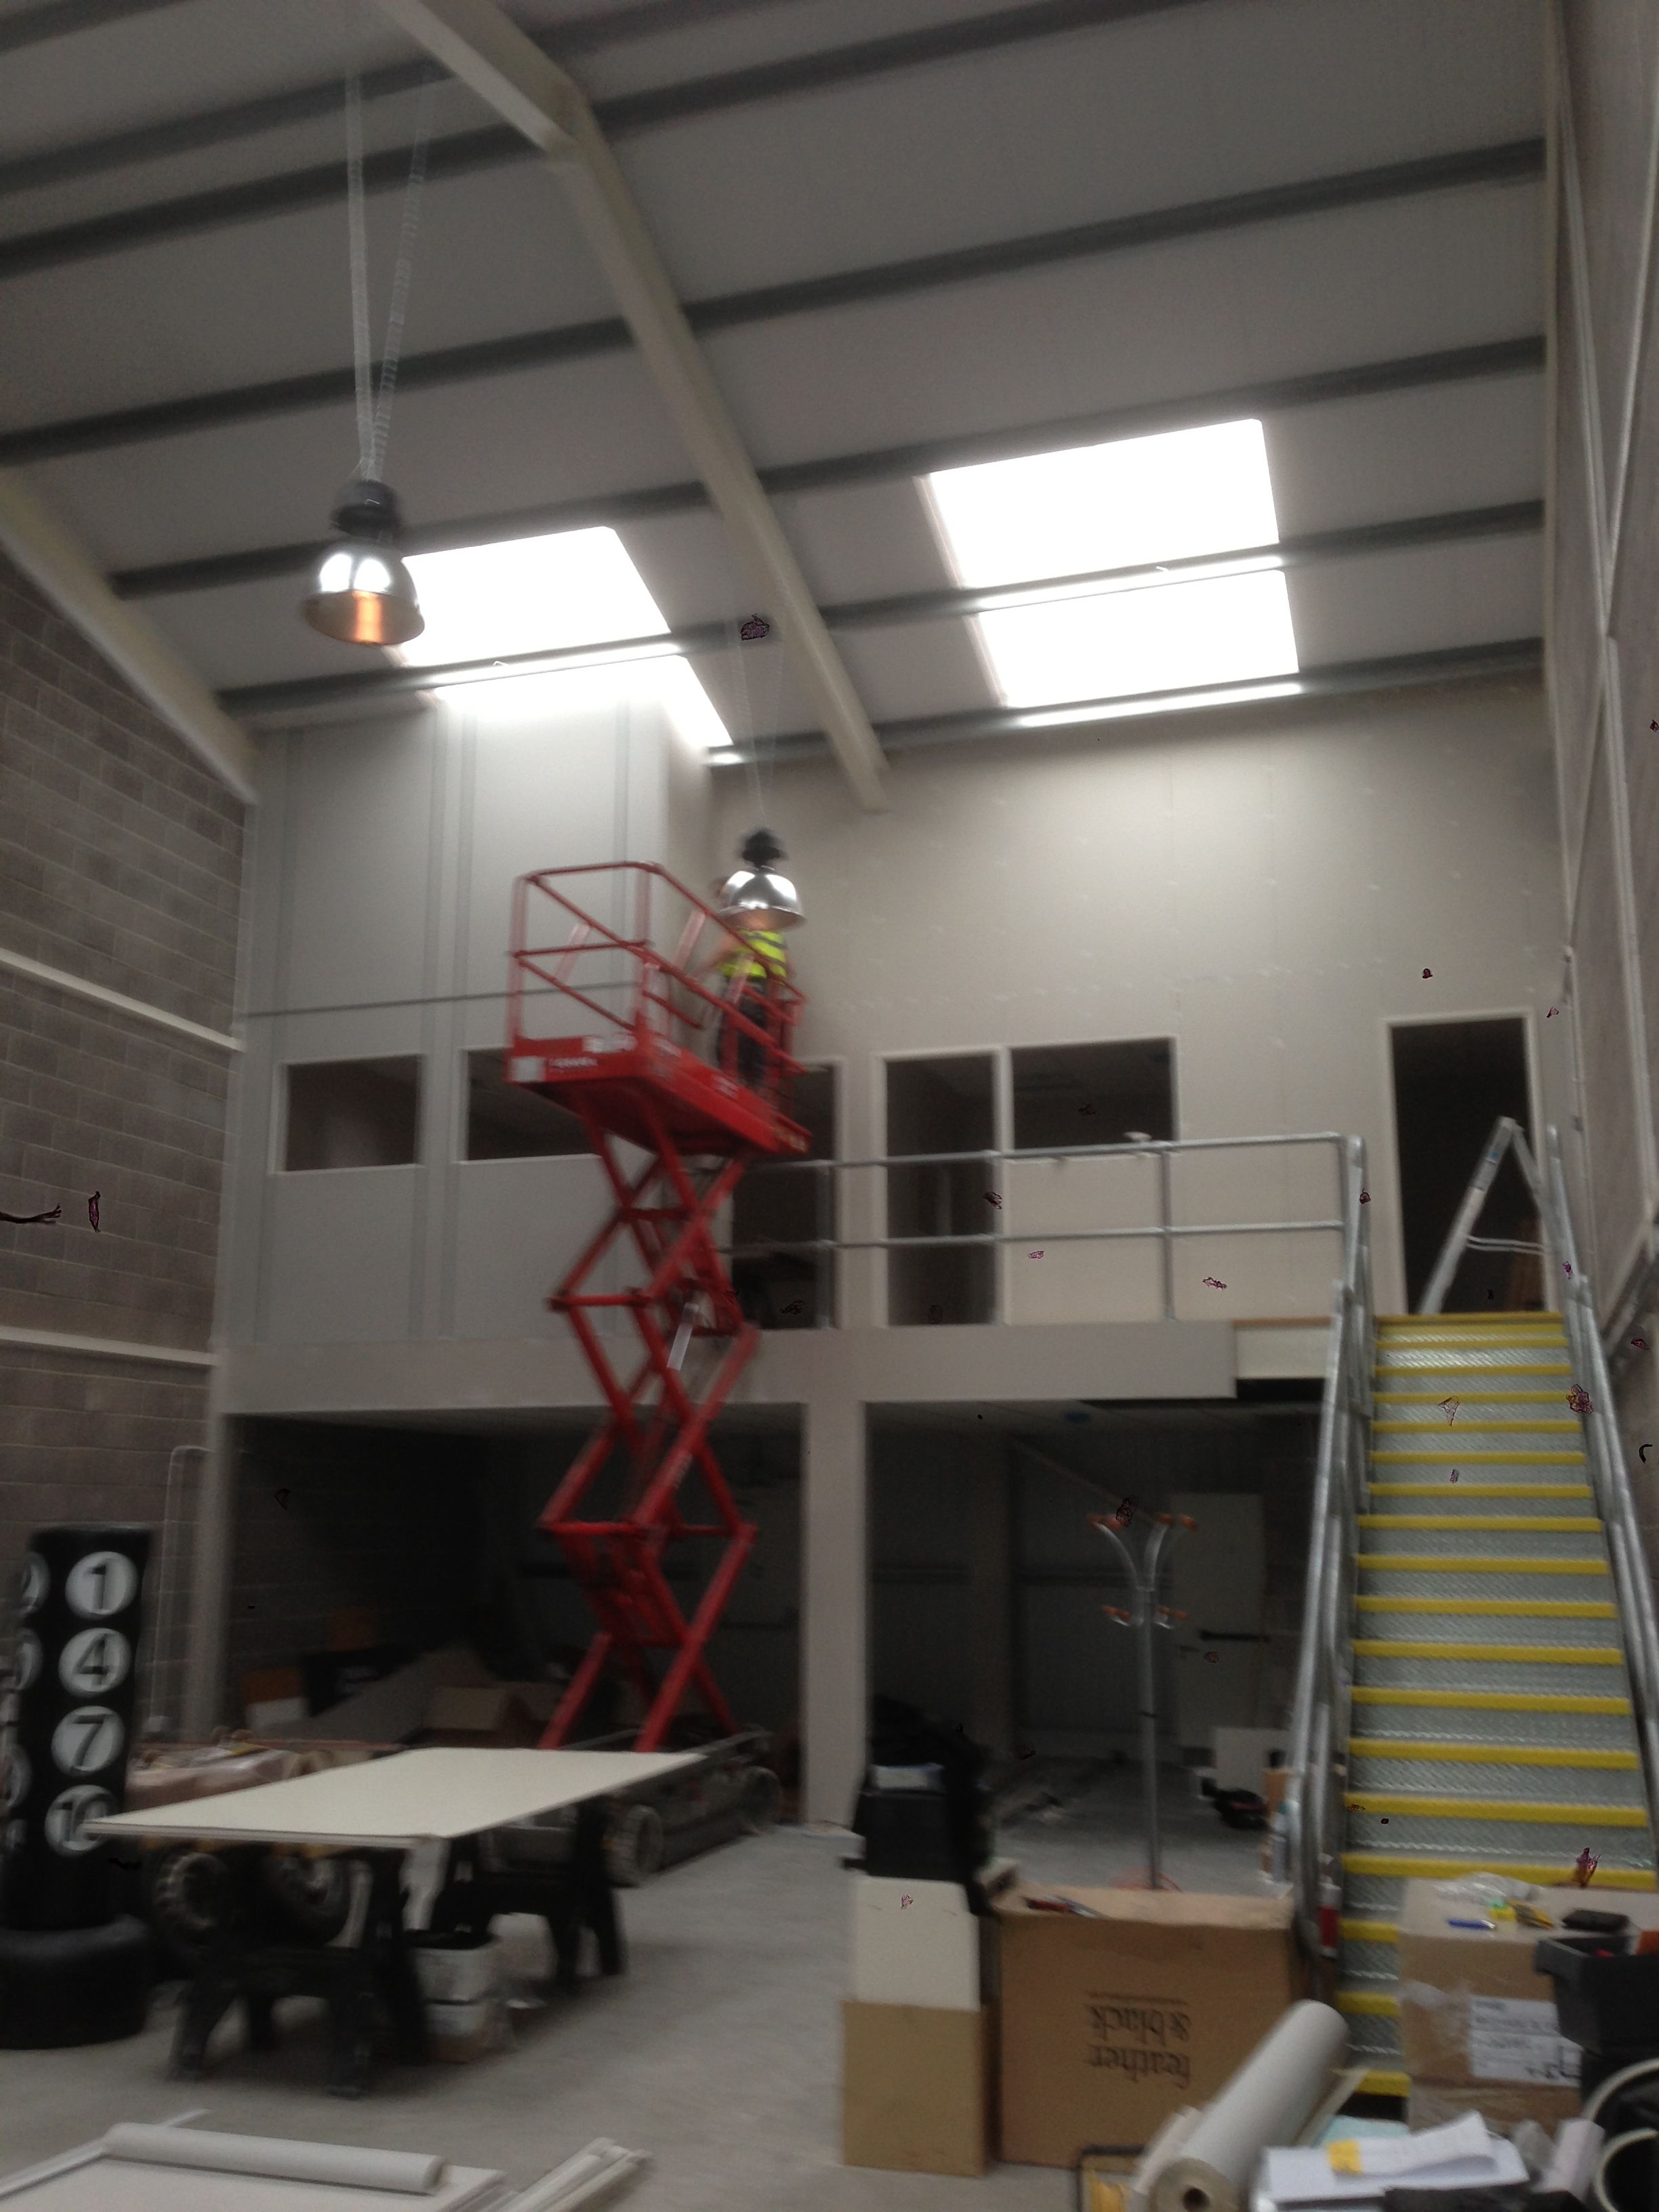 mezzanine floor office. Offices Constructed On Top Of Fire Rated Mezzanine Floor. Floor Office